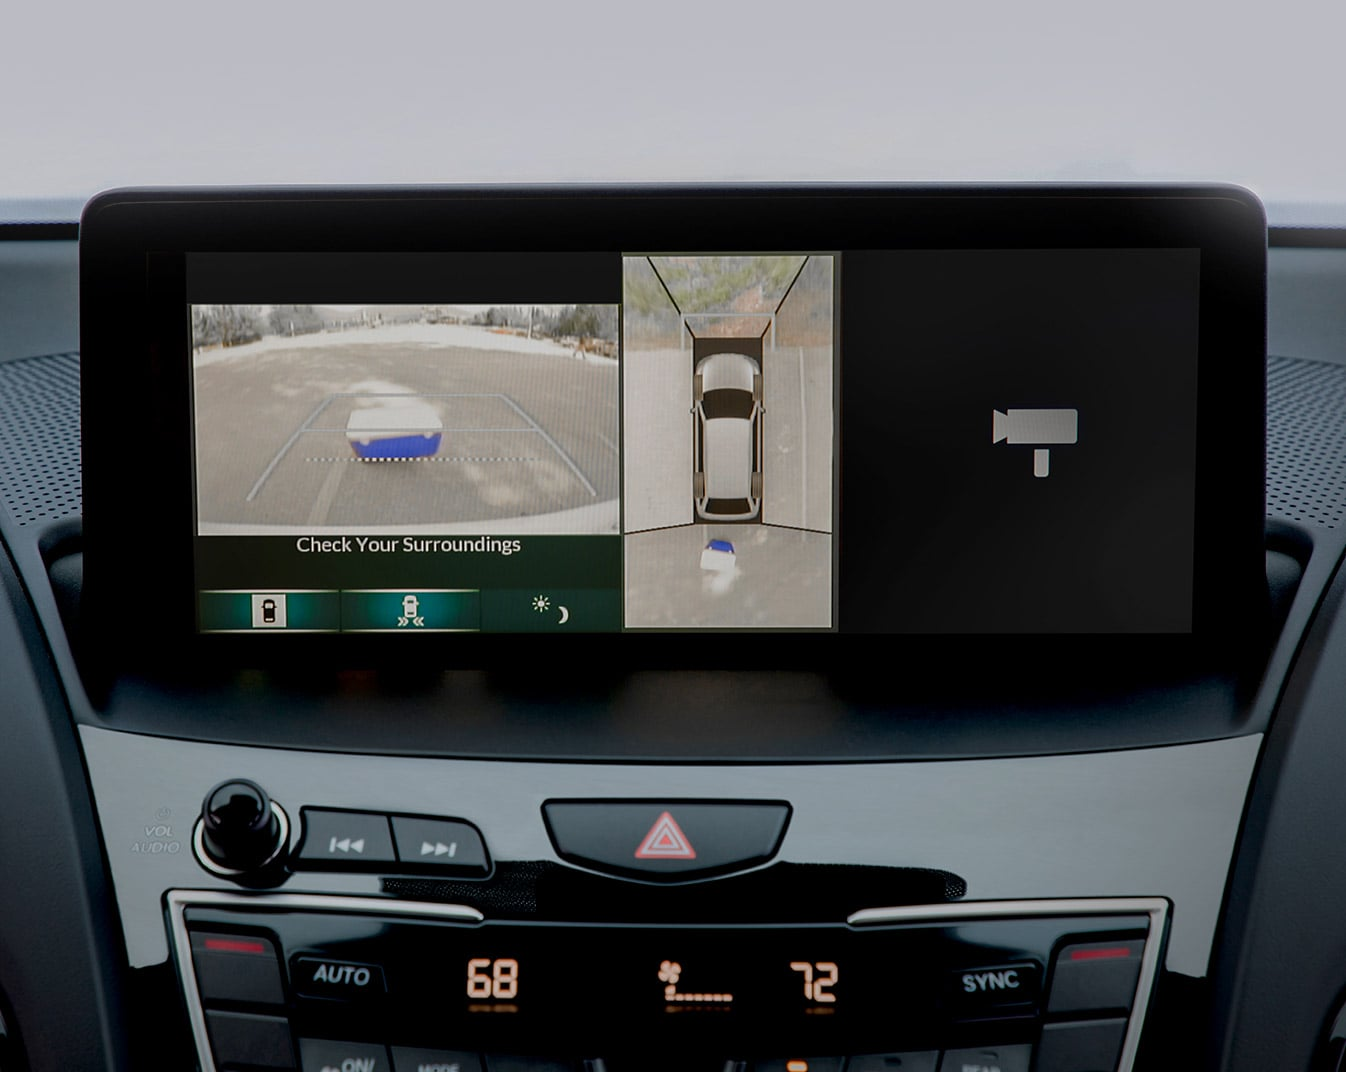 Acura Surround-View Camera